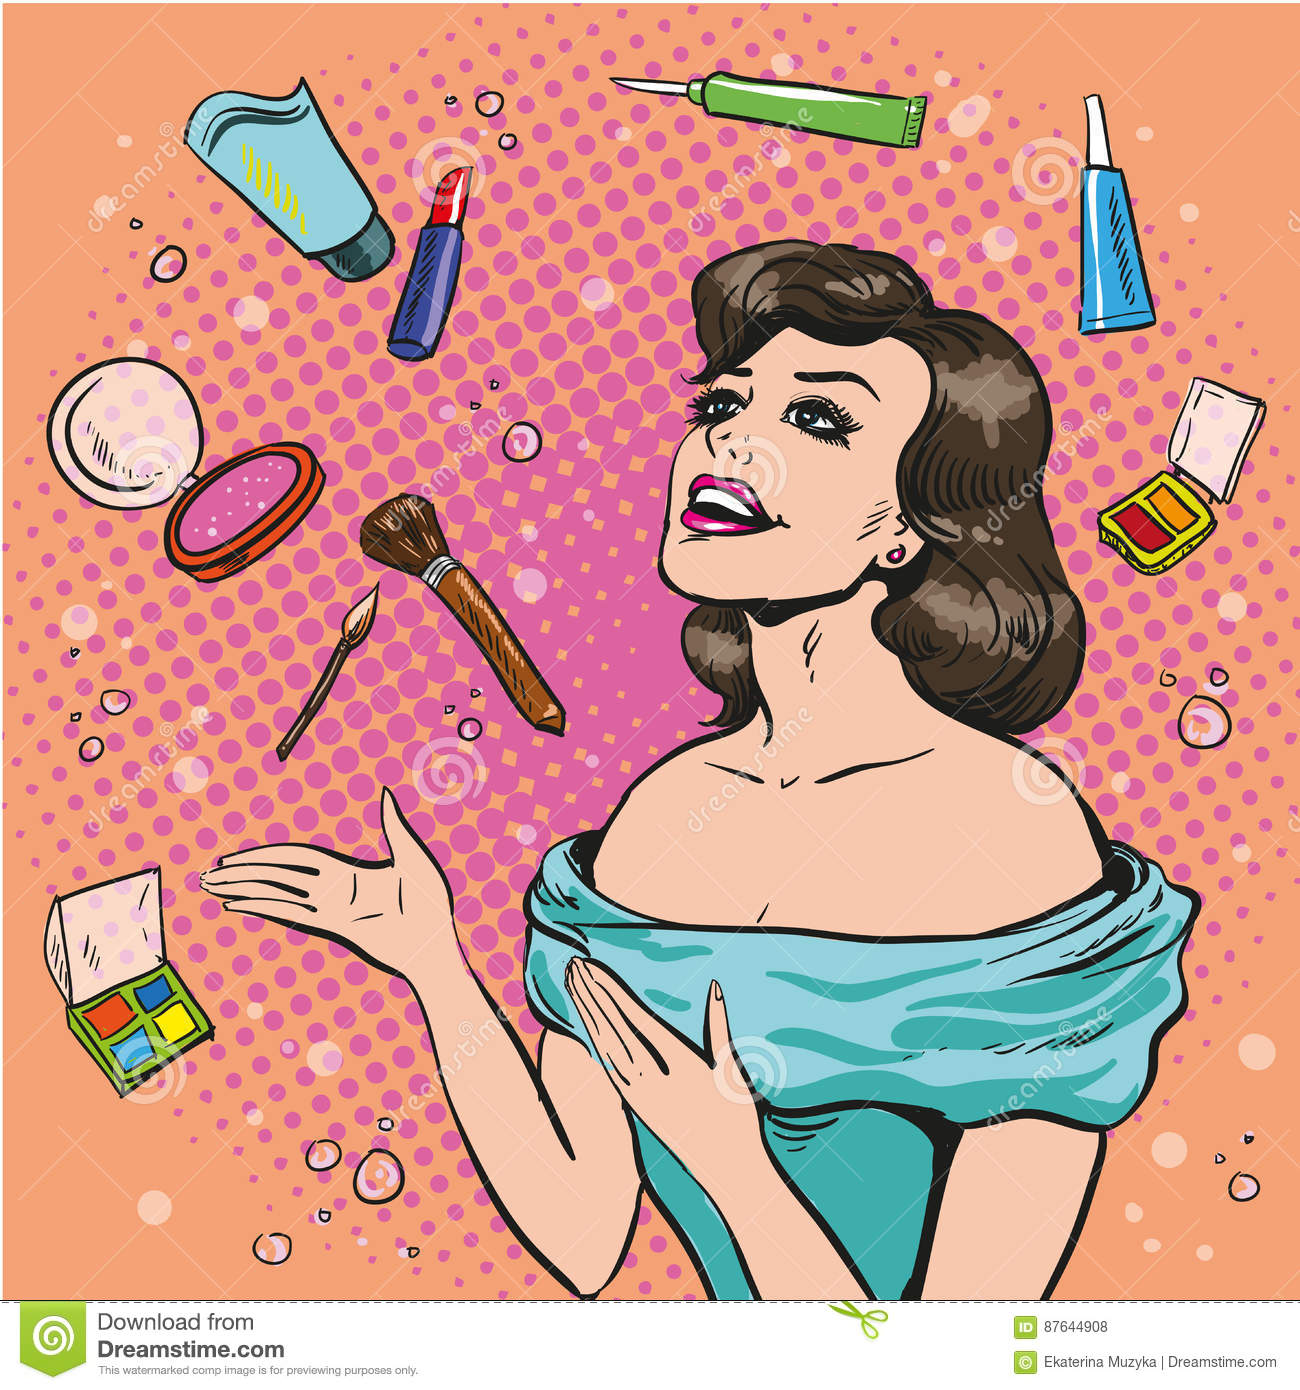 E8 90 8C E8 8A B1 E8 8A B1 E6 9C A8 E5 85 B0 E6 BC AB E7 94 BB besides Proraso besides Cosmetic 1471427 besides 1756 Rexona Logo Download moreover Royalty Free Stock Photos Vector Illustration Woman Scattered Makeup Pop Art Style Image87644908. on vector skin care